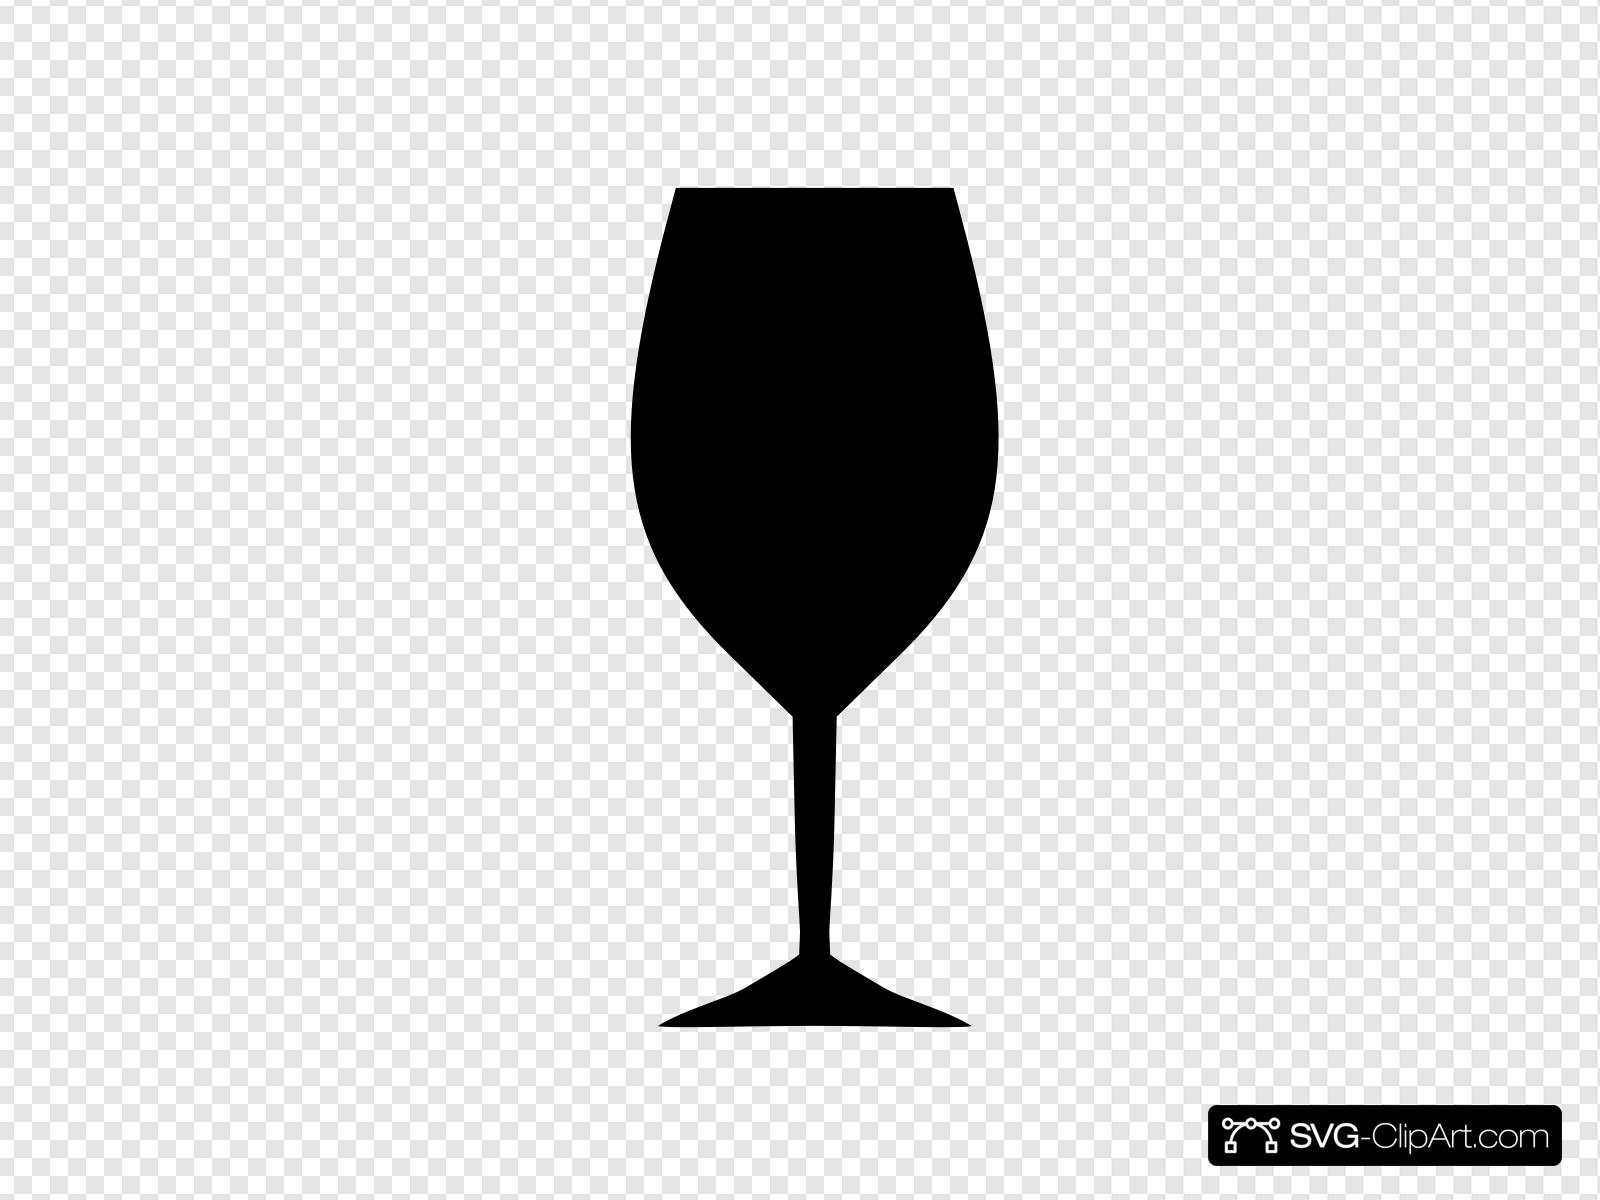 Wine Glass Clip art, Icon and SVG.